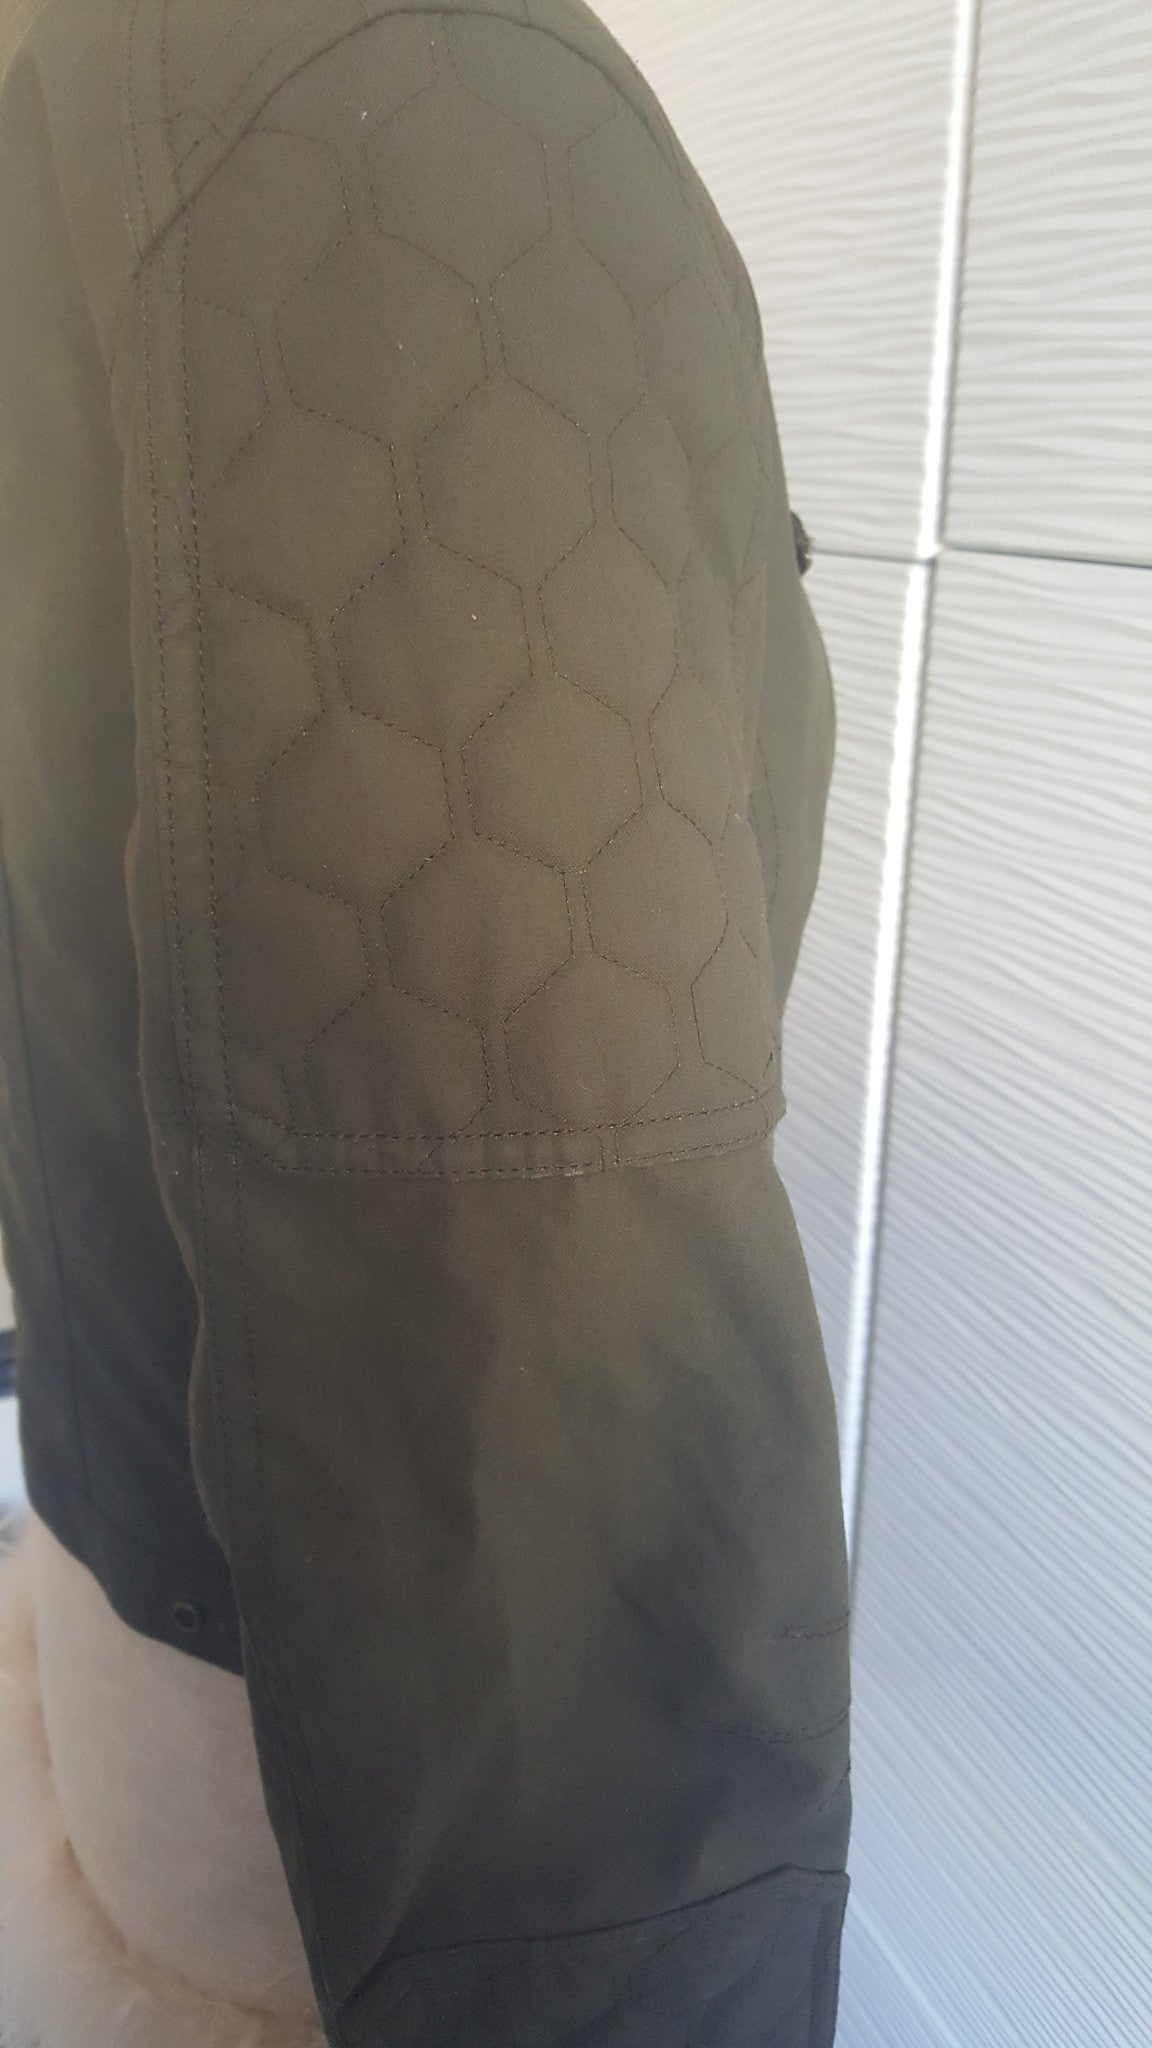 BURBERRY BRIT CROPPED COTTON OLIVE GREEN BIKER JACKET - SIZE US 8